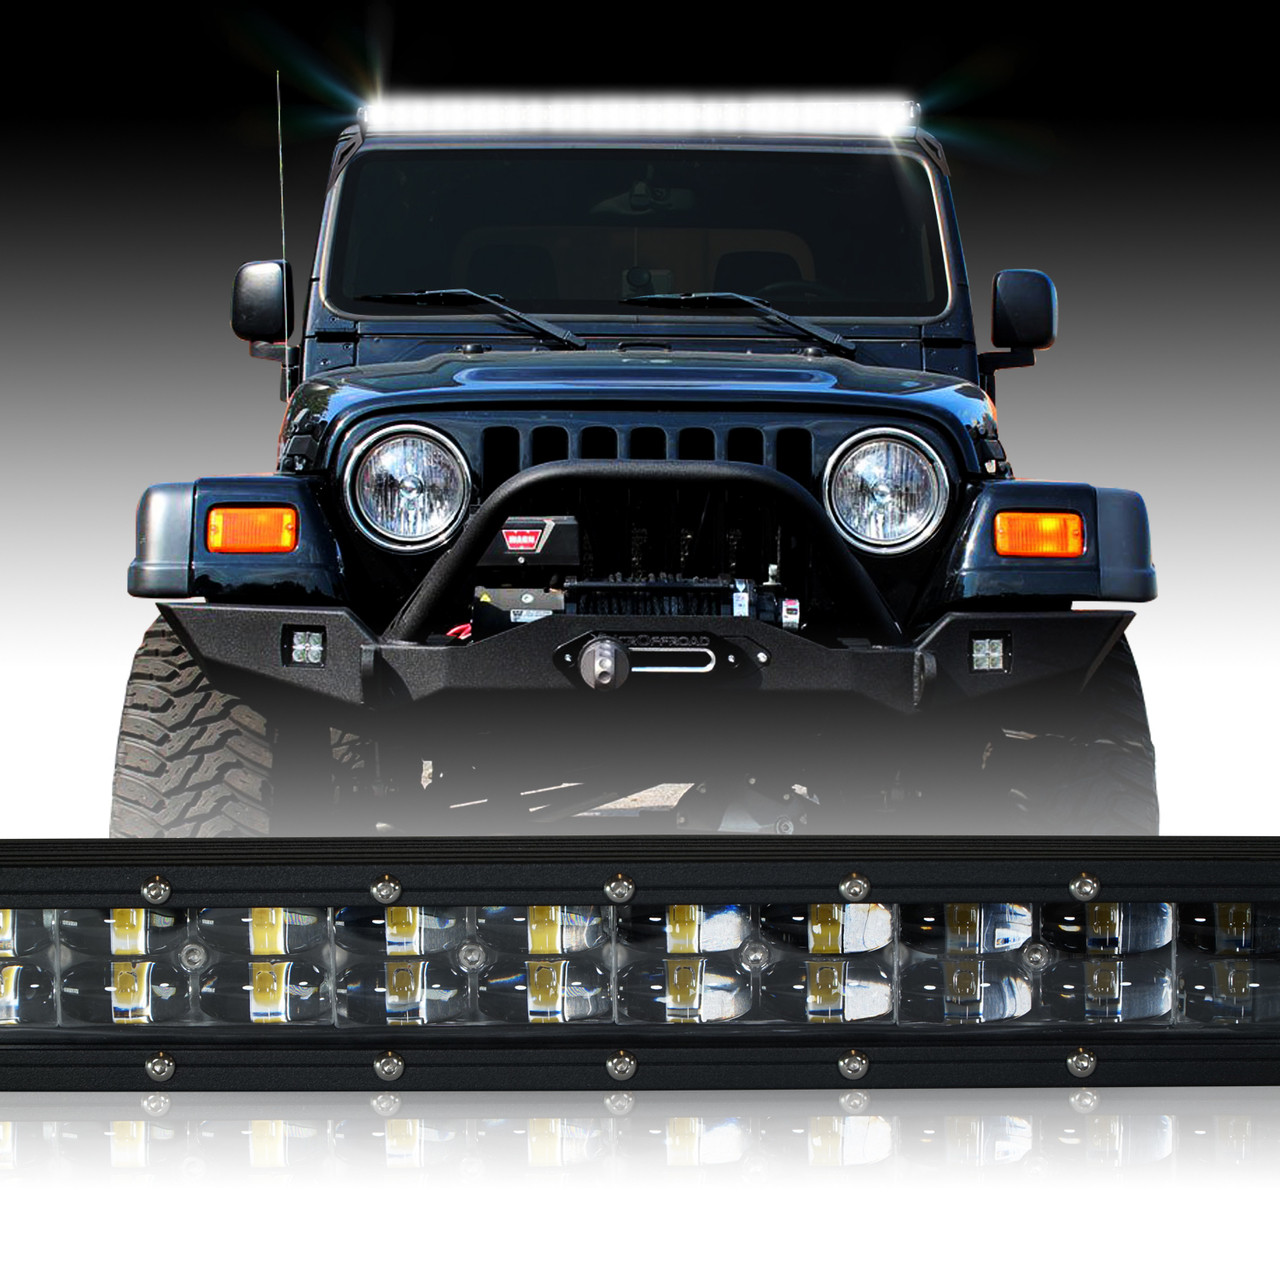 Led light bar 288w 50 inches bracket wiring harness kit for wrangler led light bar 288w 50 inches bracket wiring harness kit for wrangler tj 1997 2006 aloadofball Image collections